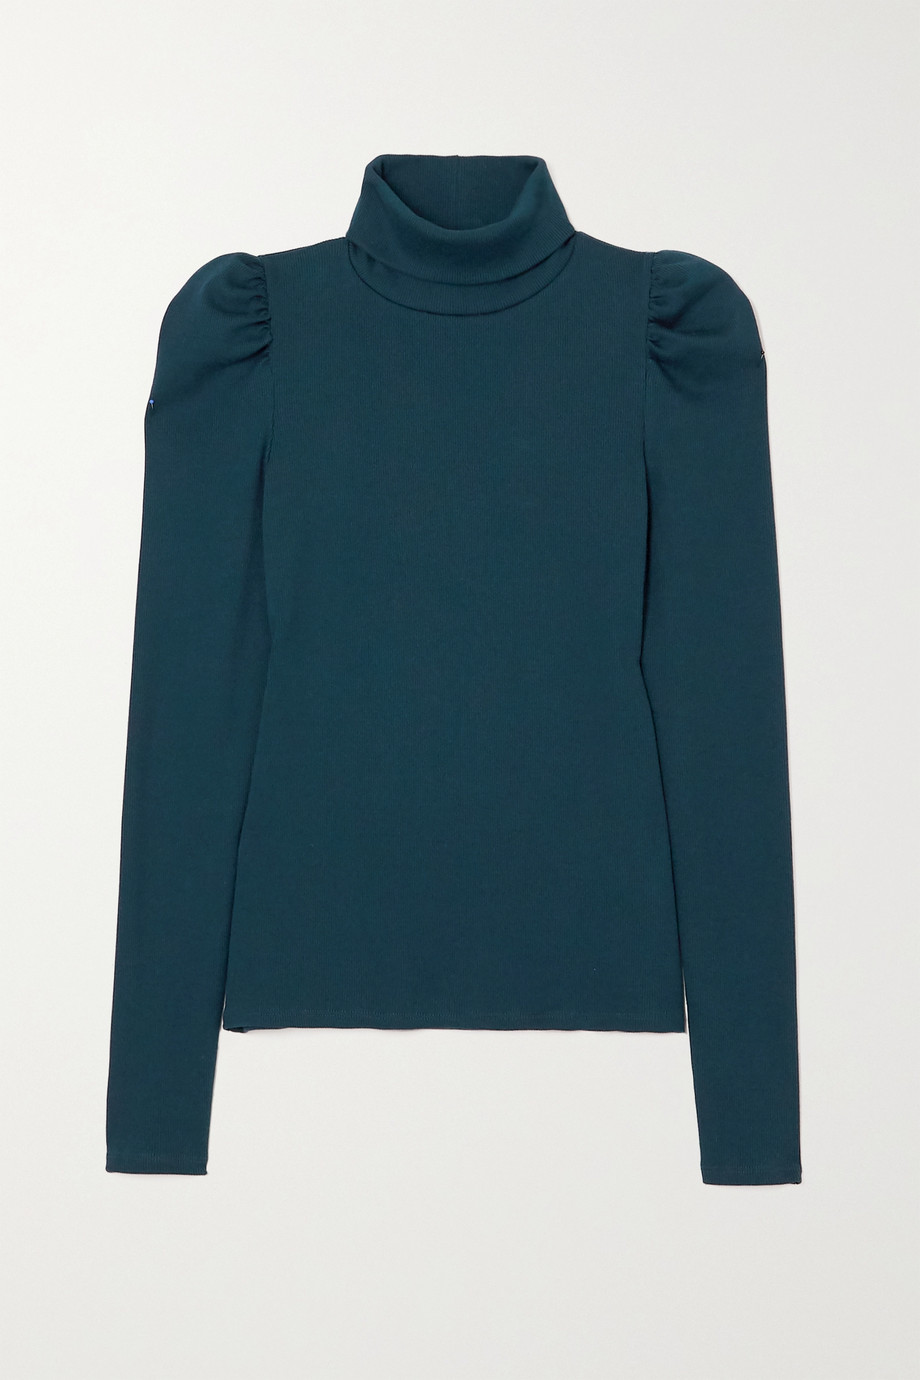 VERONICA BEARD Cedar gathered ribbed stretch Pima cotton jersey turtleneck top